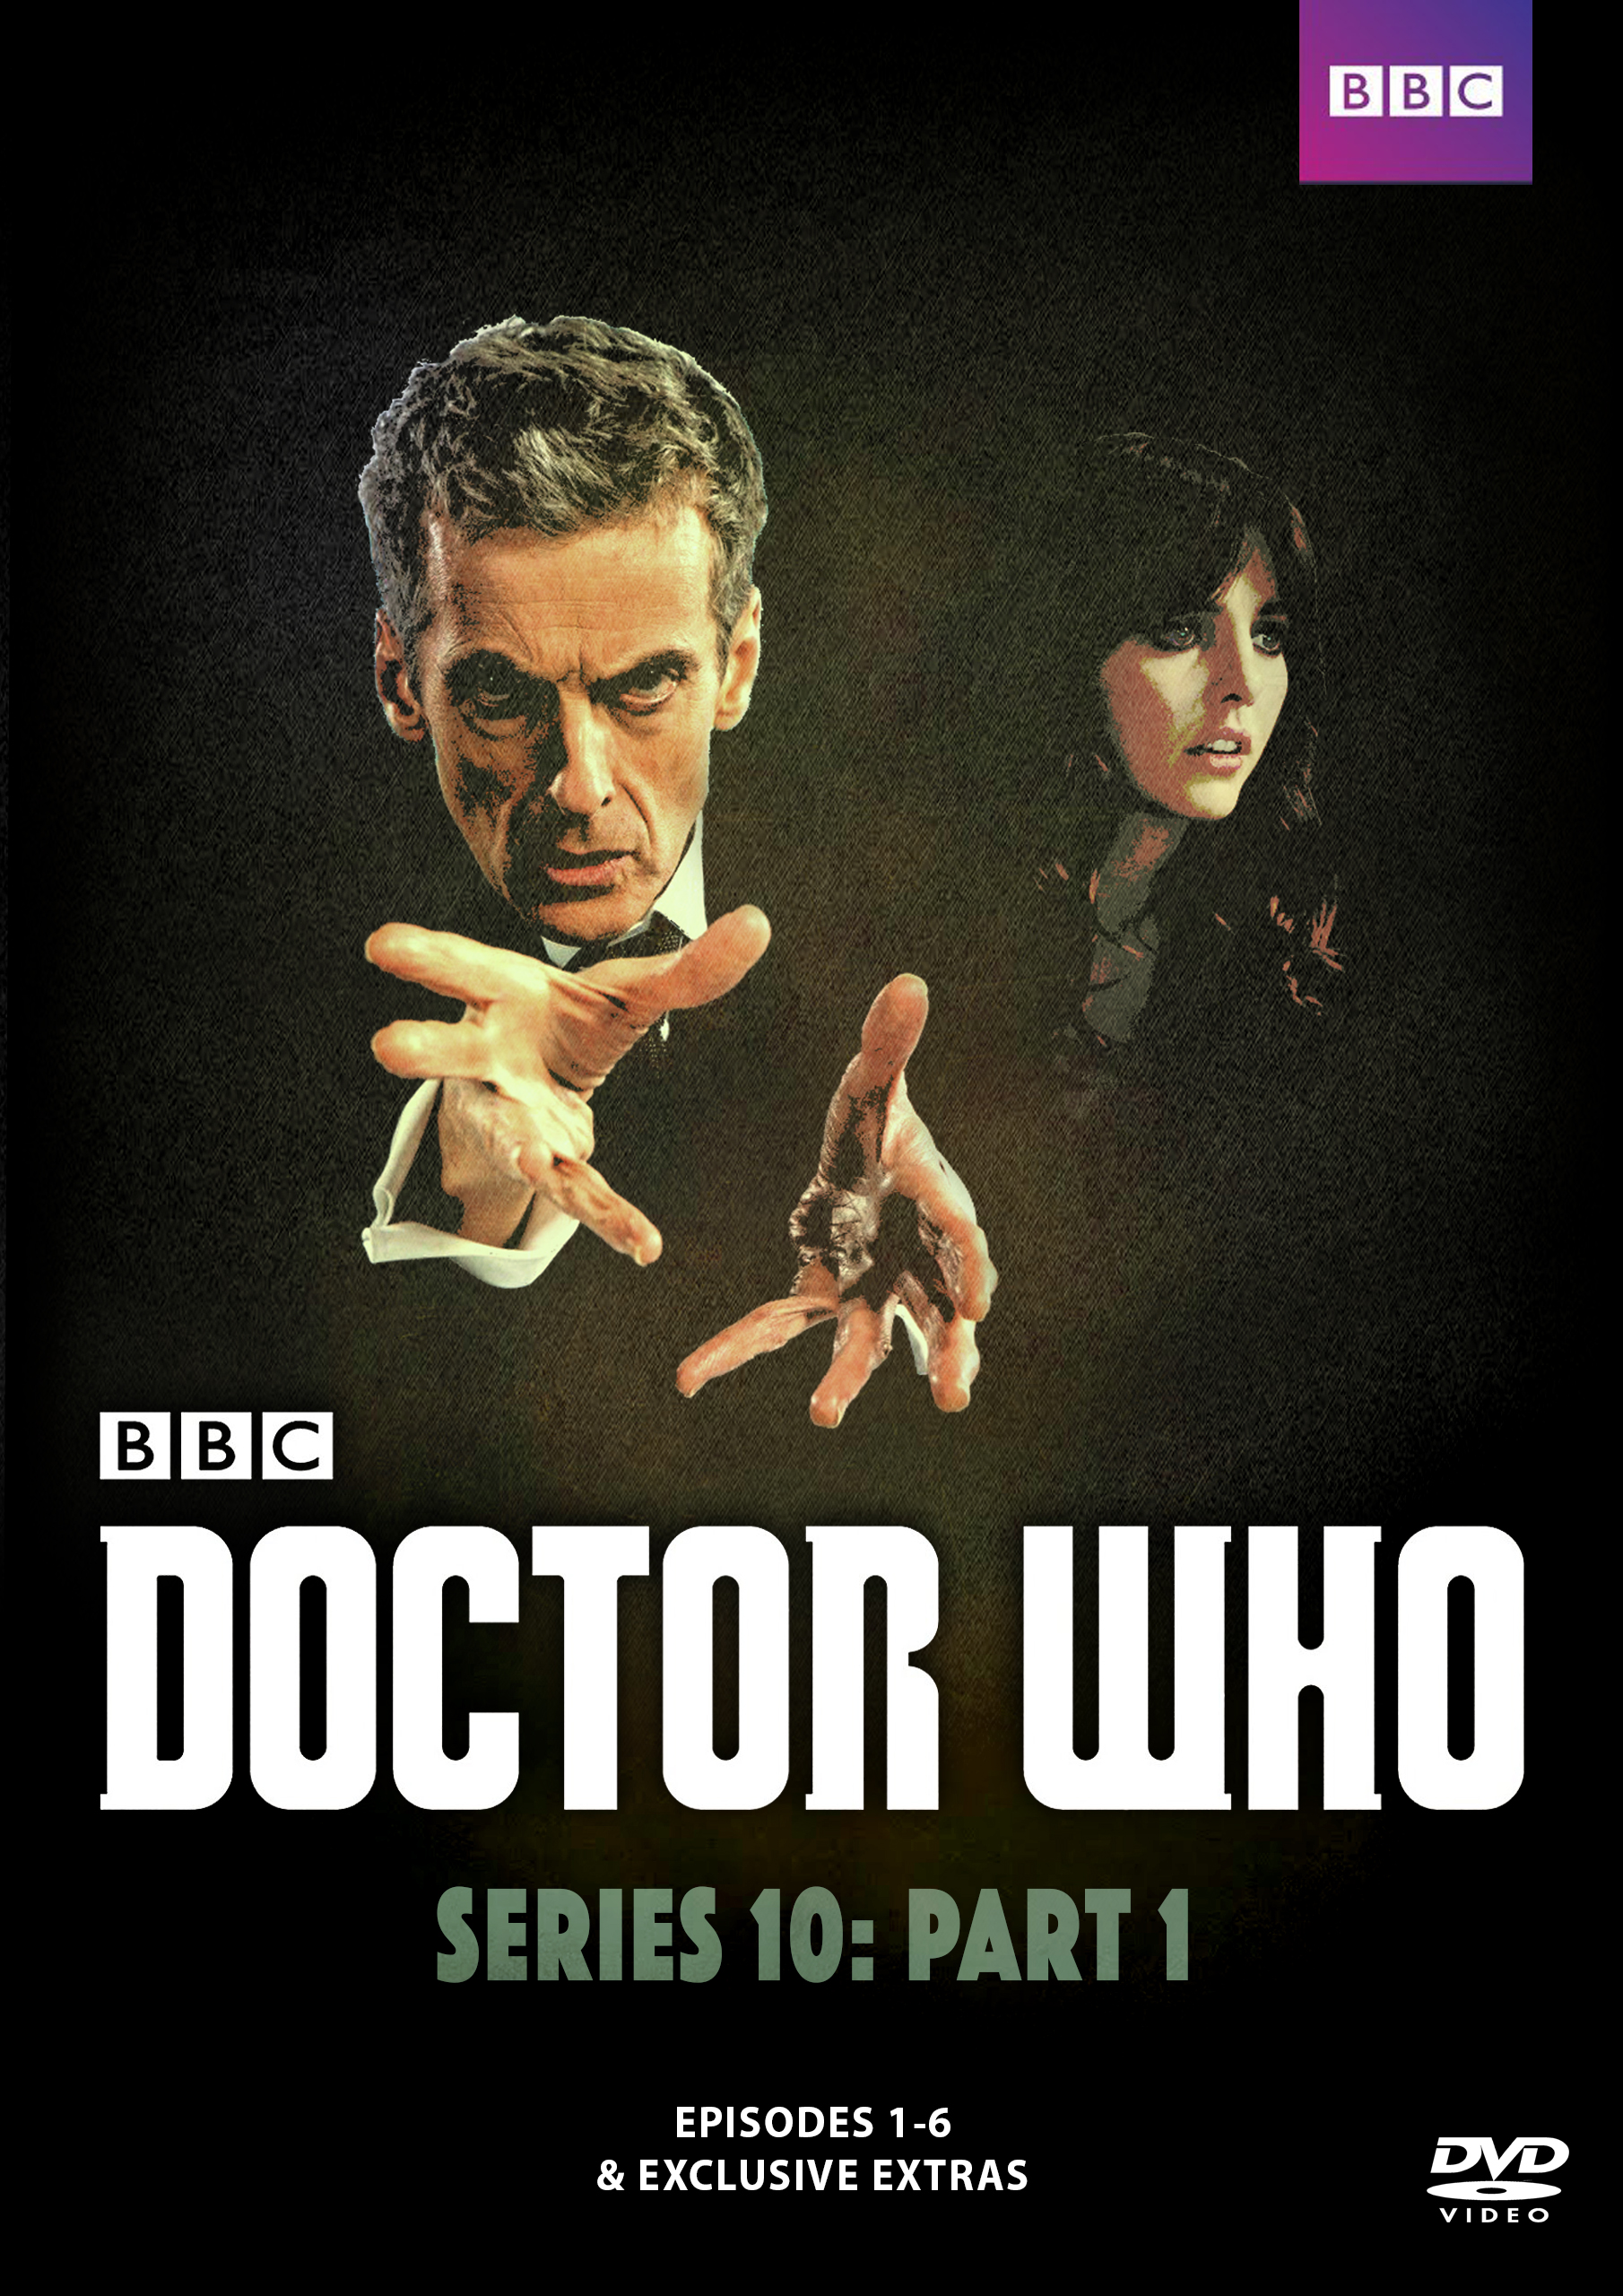 doctor_who_series_10___fanon_series_dvd_